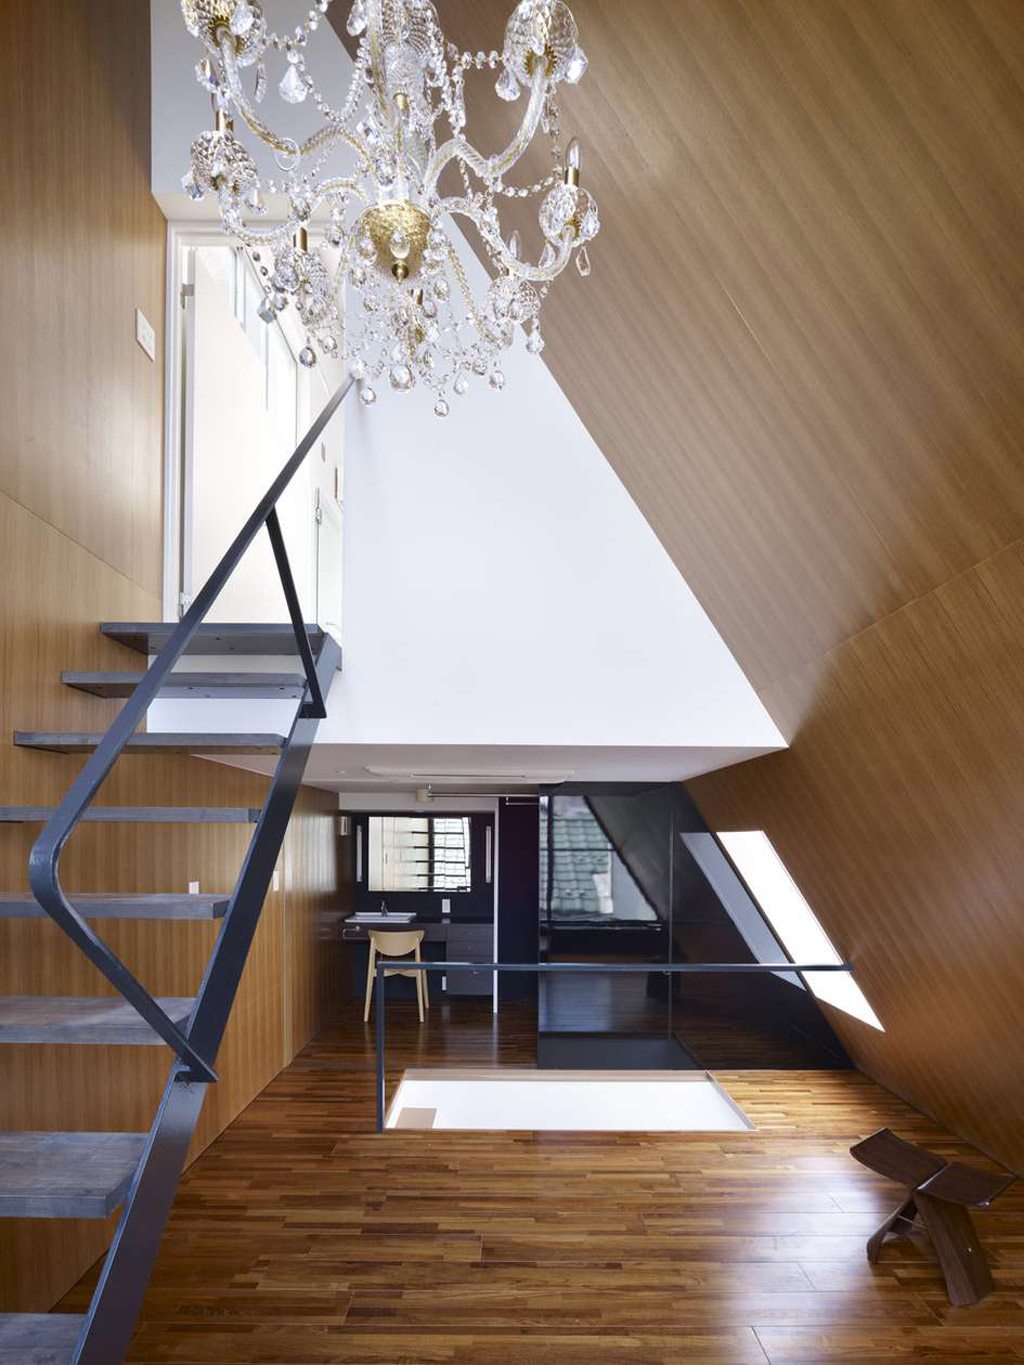 zyx-house-naf-architect-and-design-2